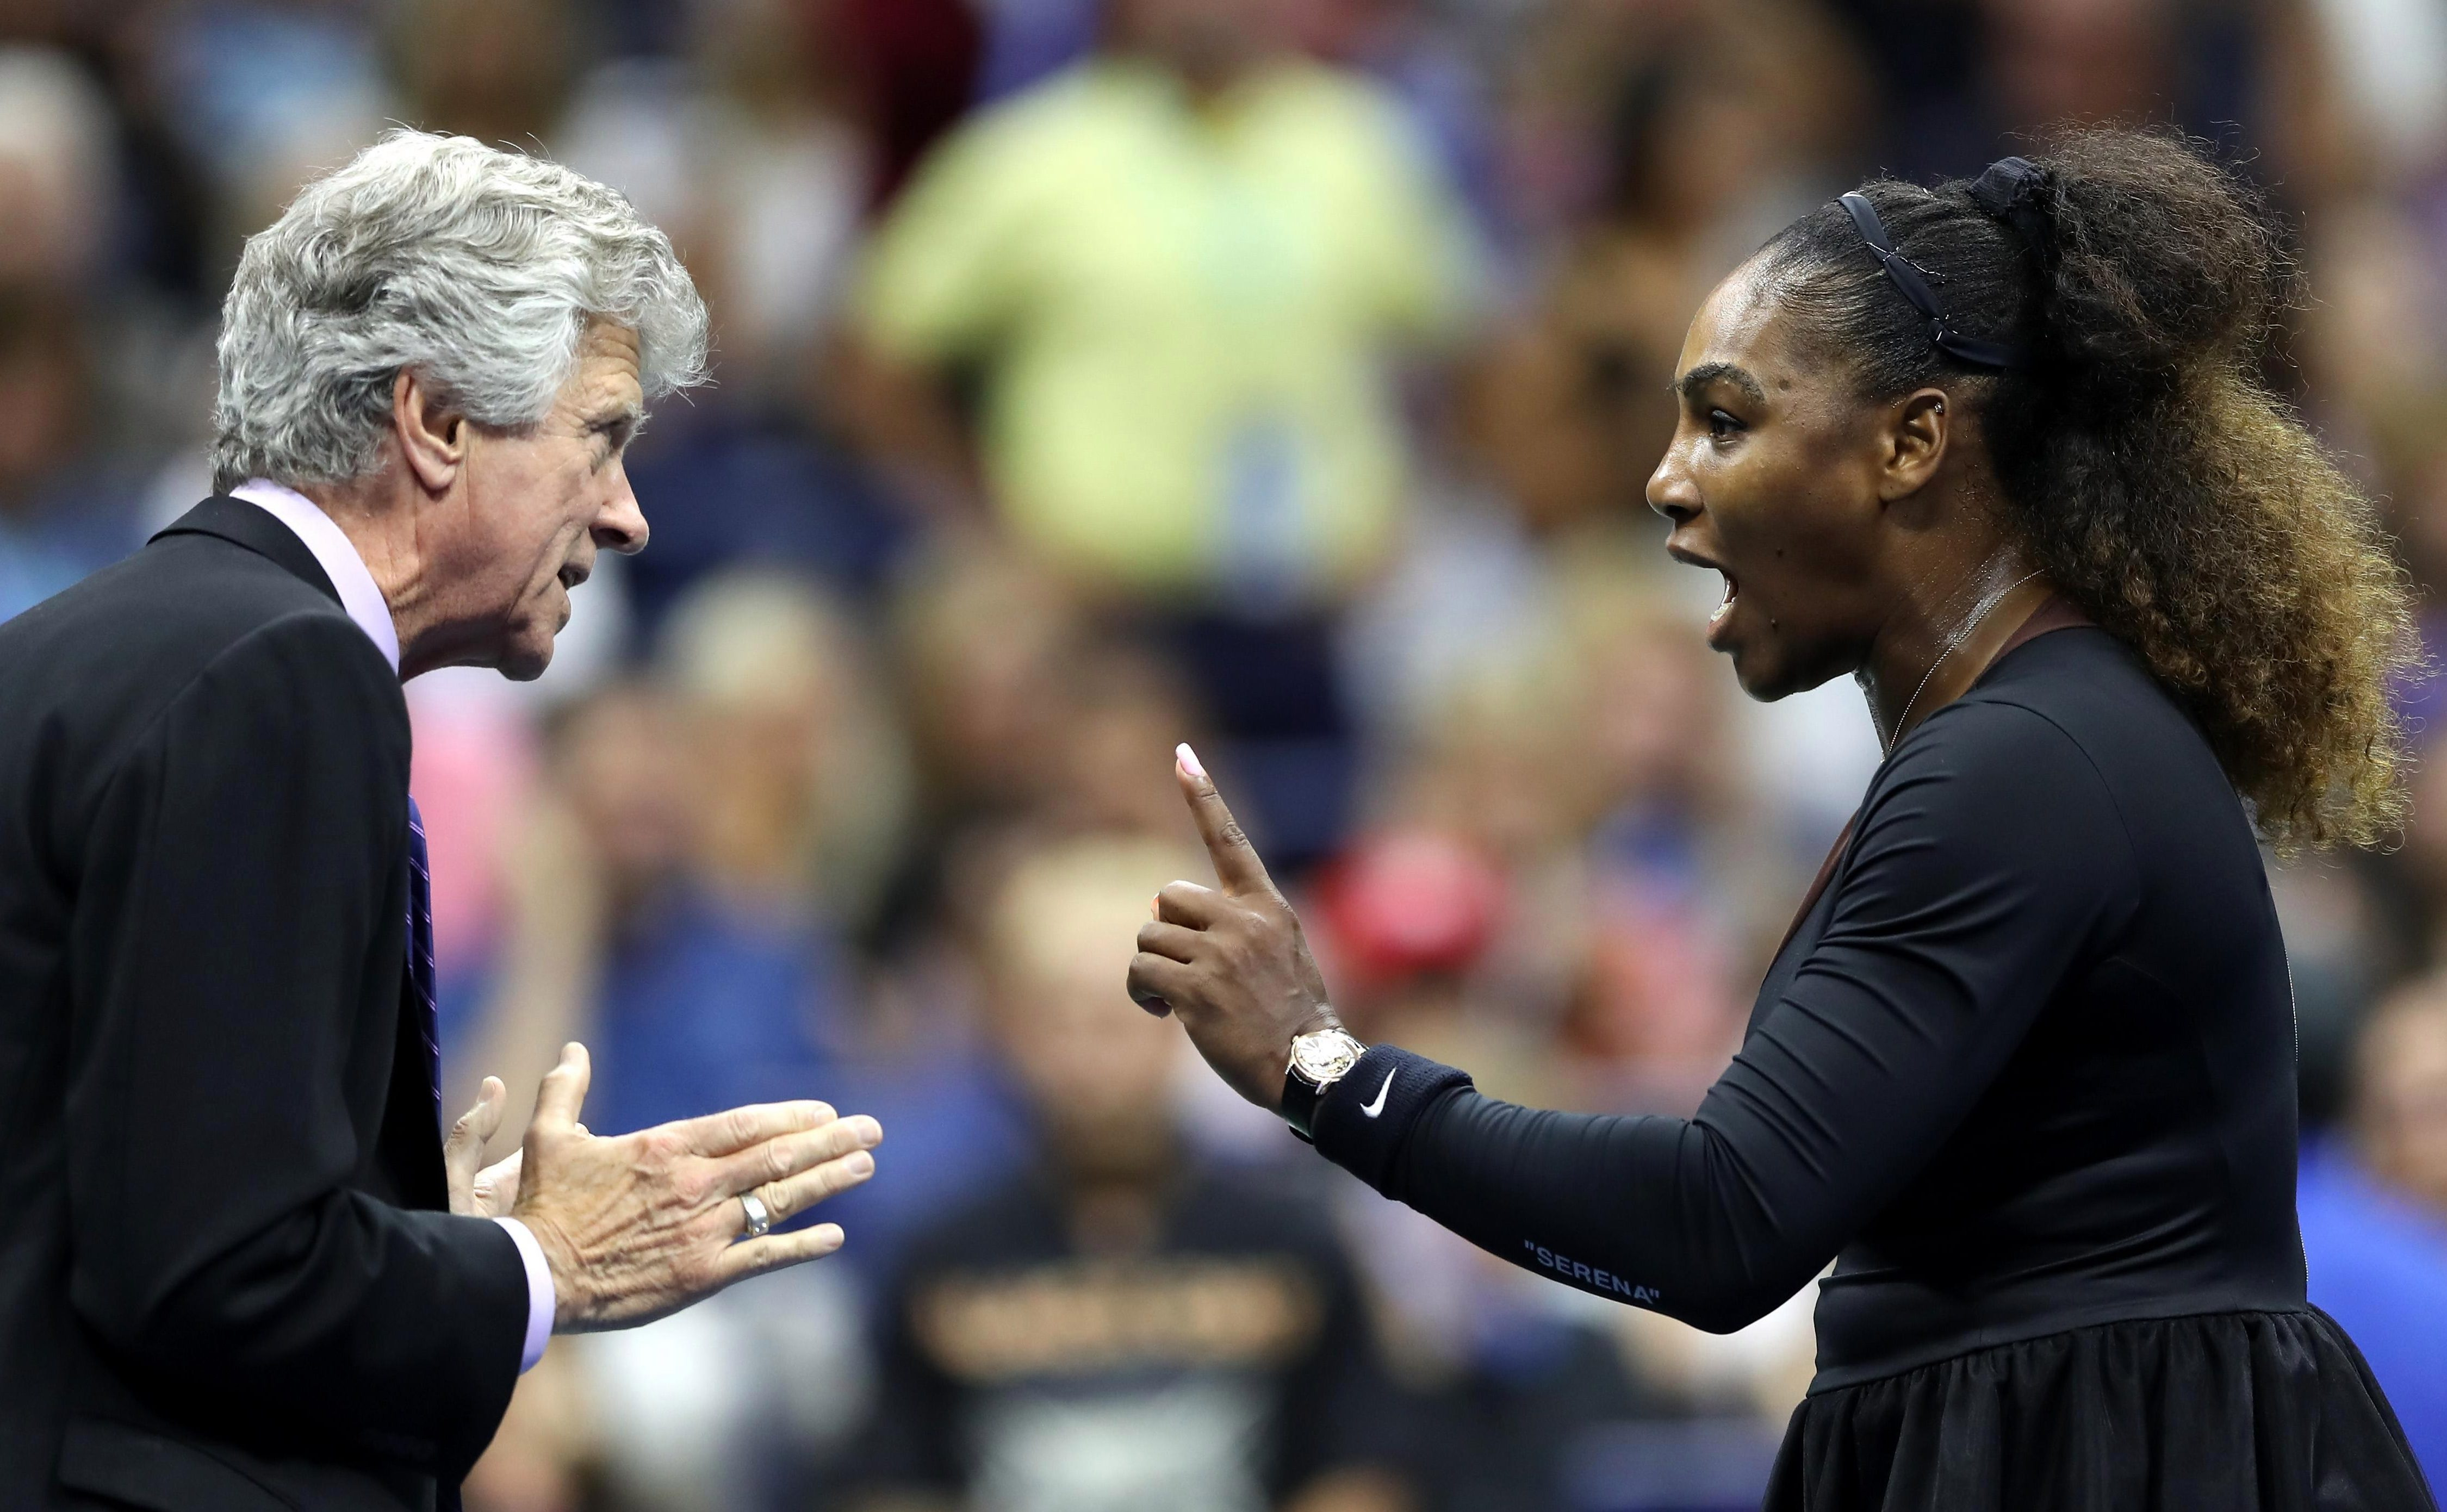 Williams lost her cool in her US Open Final defeat to Naomi Osaka in September